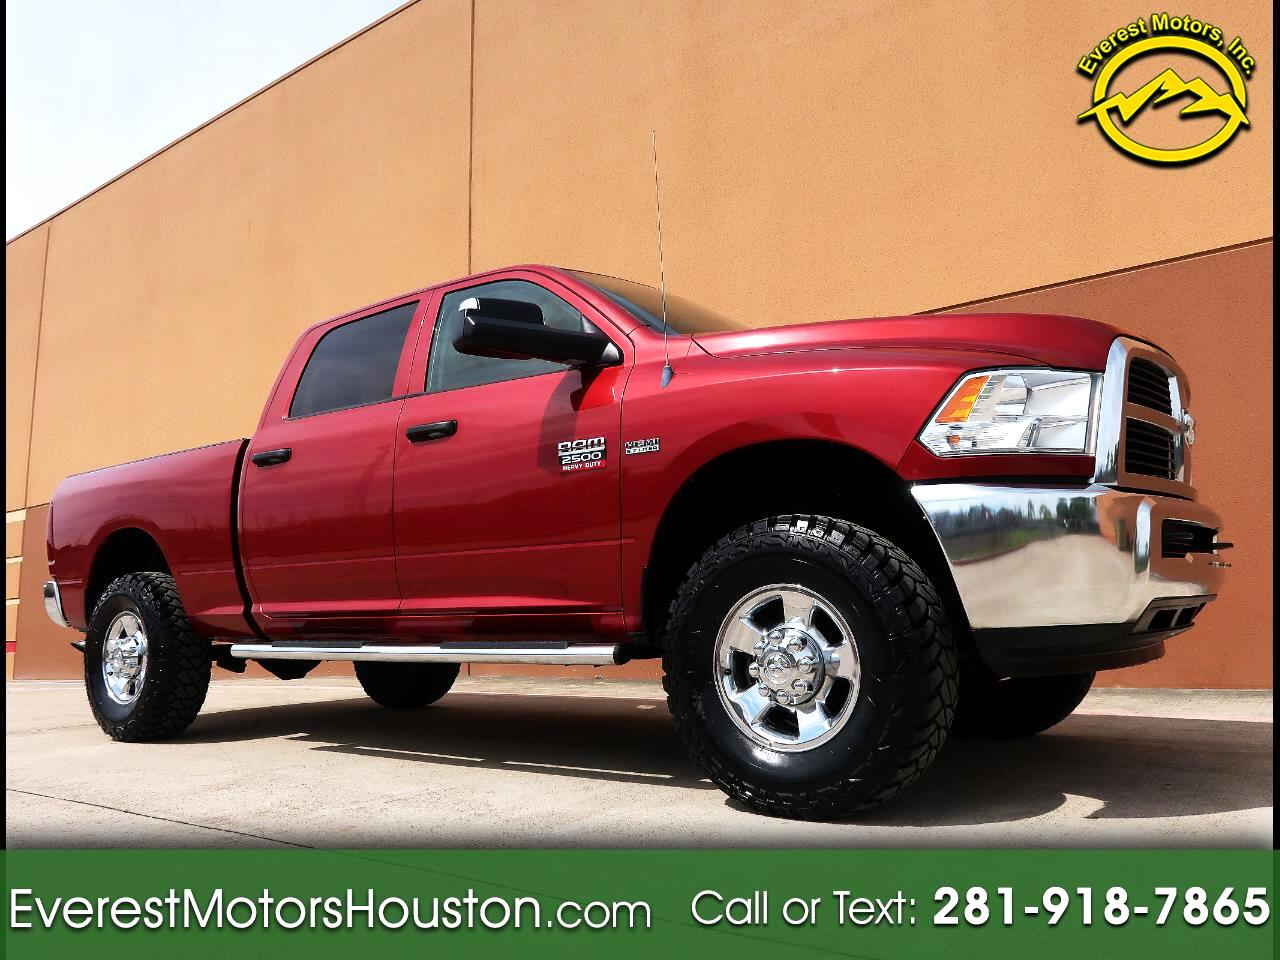 2012 Dodge Ram 2500 ST CREW CAB SHORT BED 4WD 1-OWNER